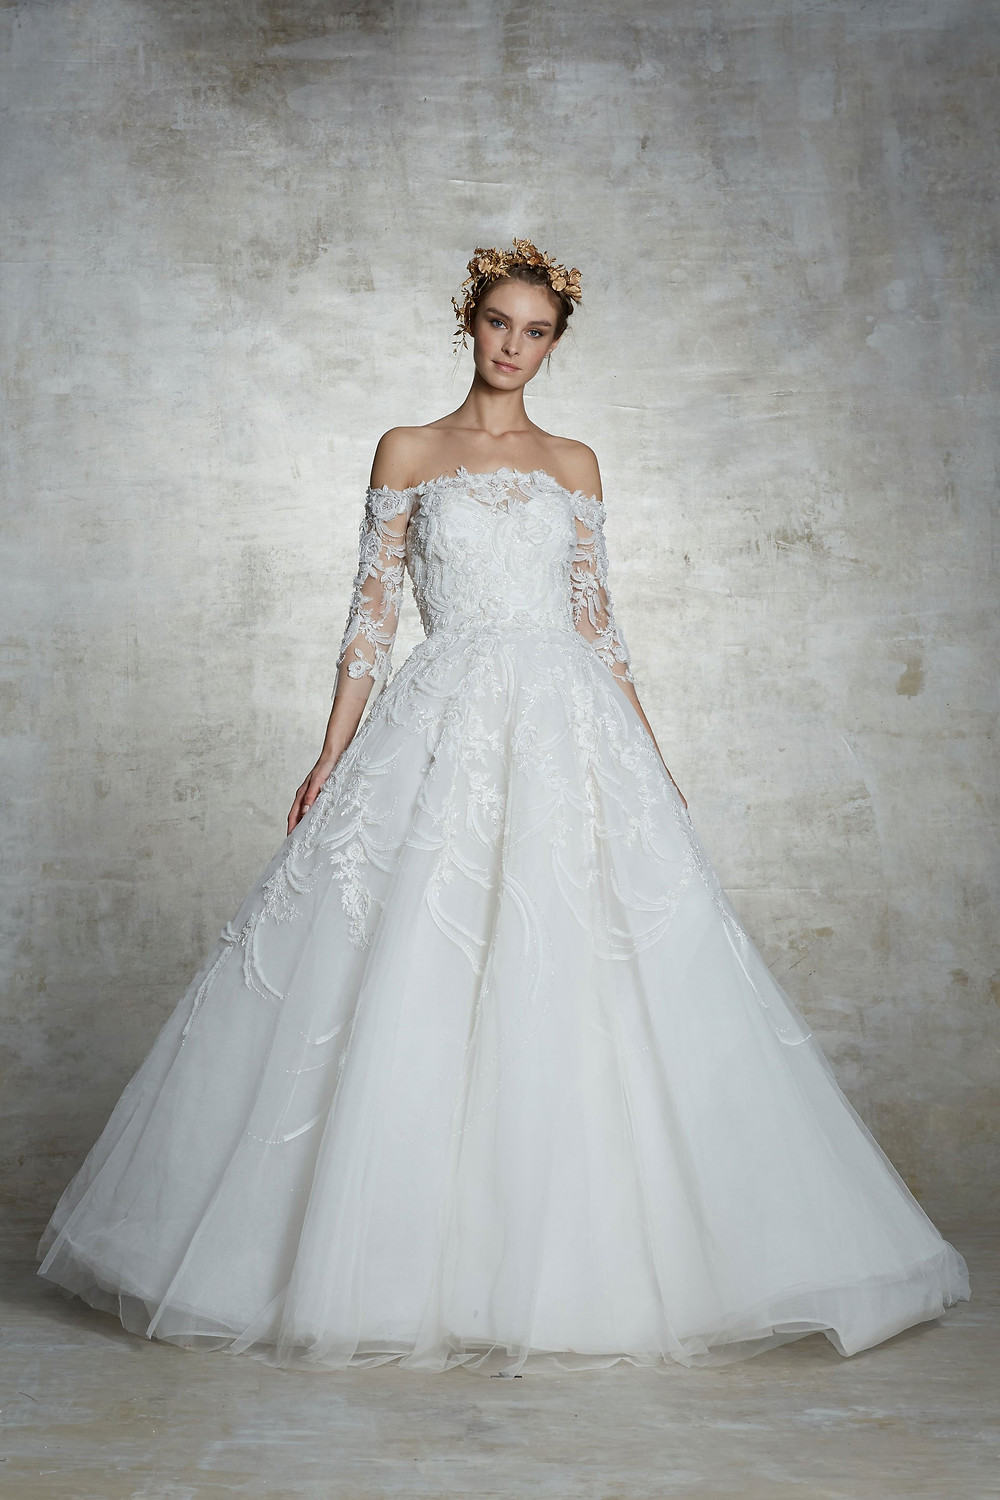 A Marchesa 3/4 sleeve, ball gown wedding dress, with a tulle skirt, a lace top and illusion sleeves